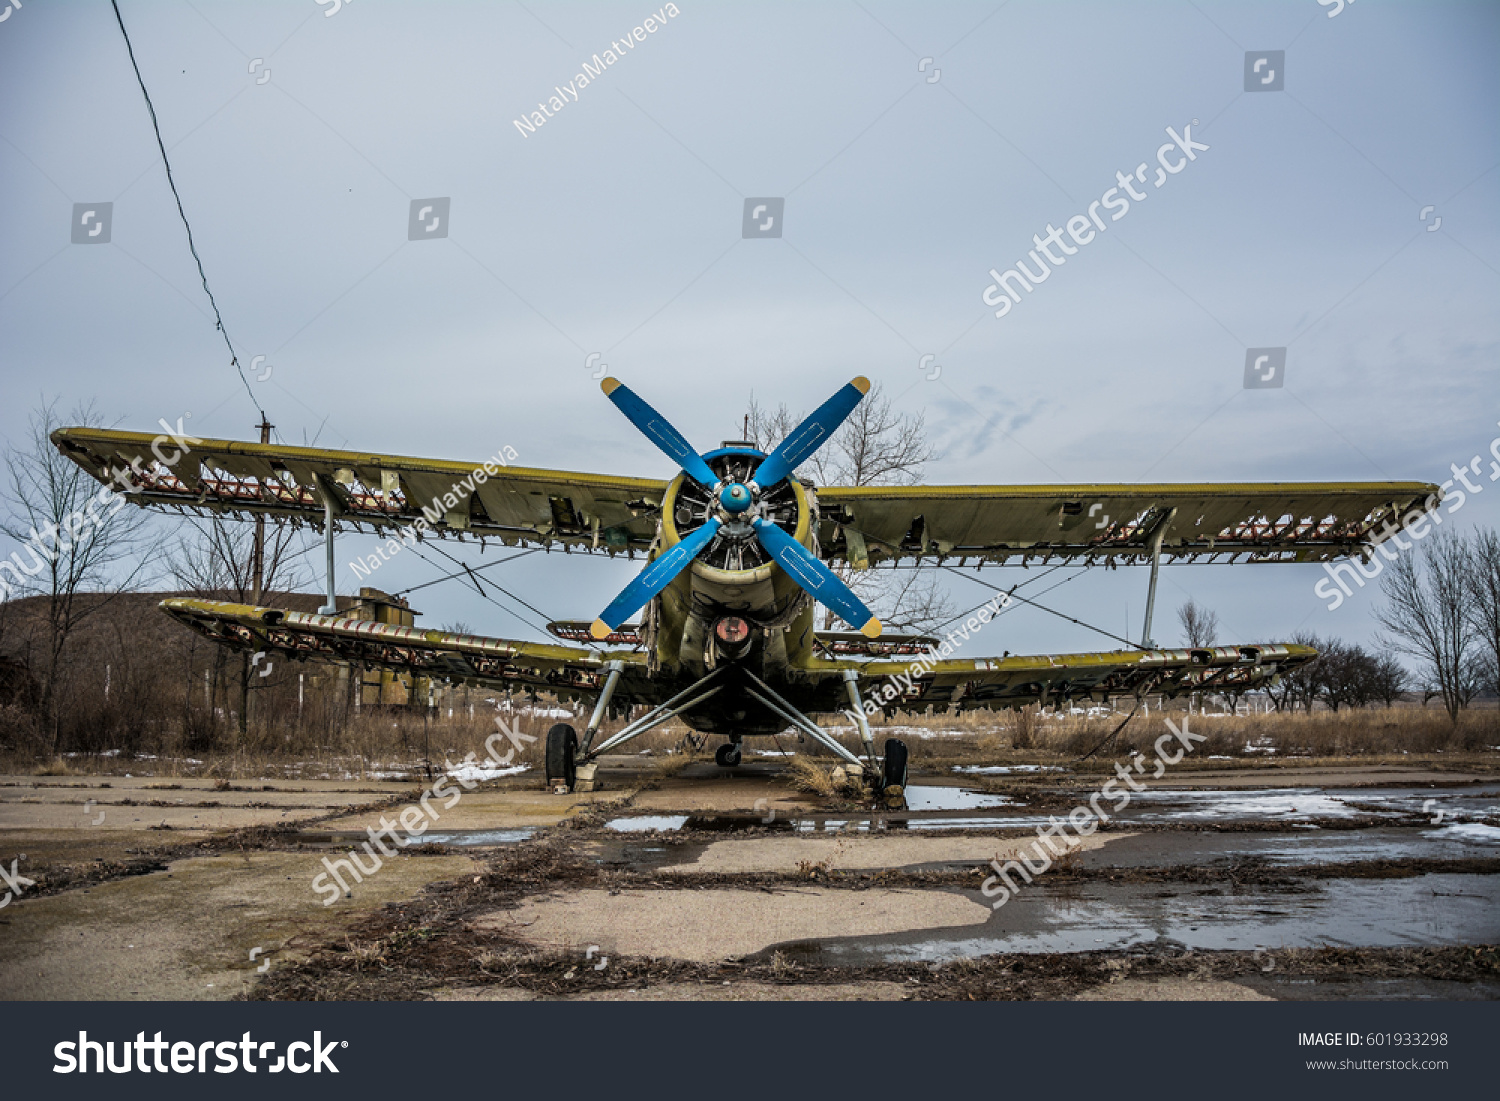 Hdr foto old airplane on airfield stock photo 601933298 shutterstock hdr foto of an old airplane on airfield and cloudy background altavistaventures Gallery